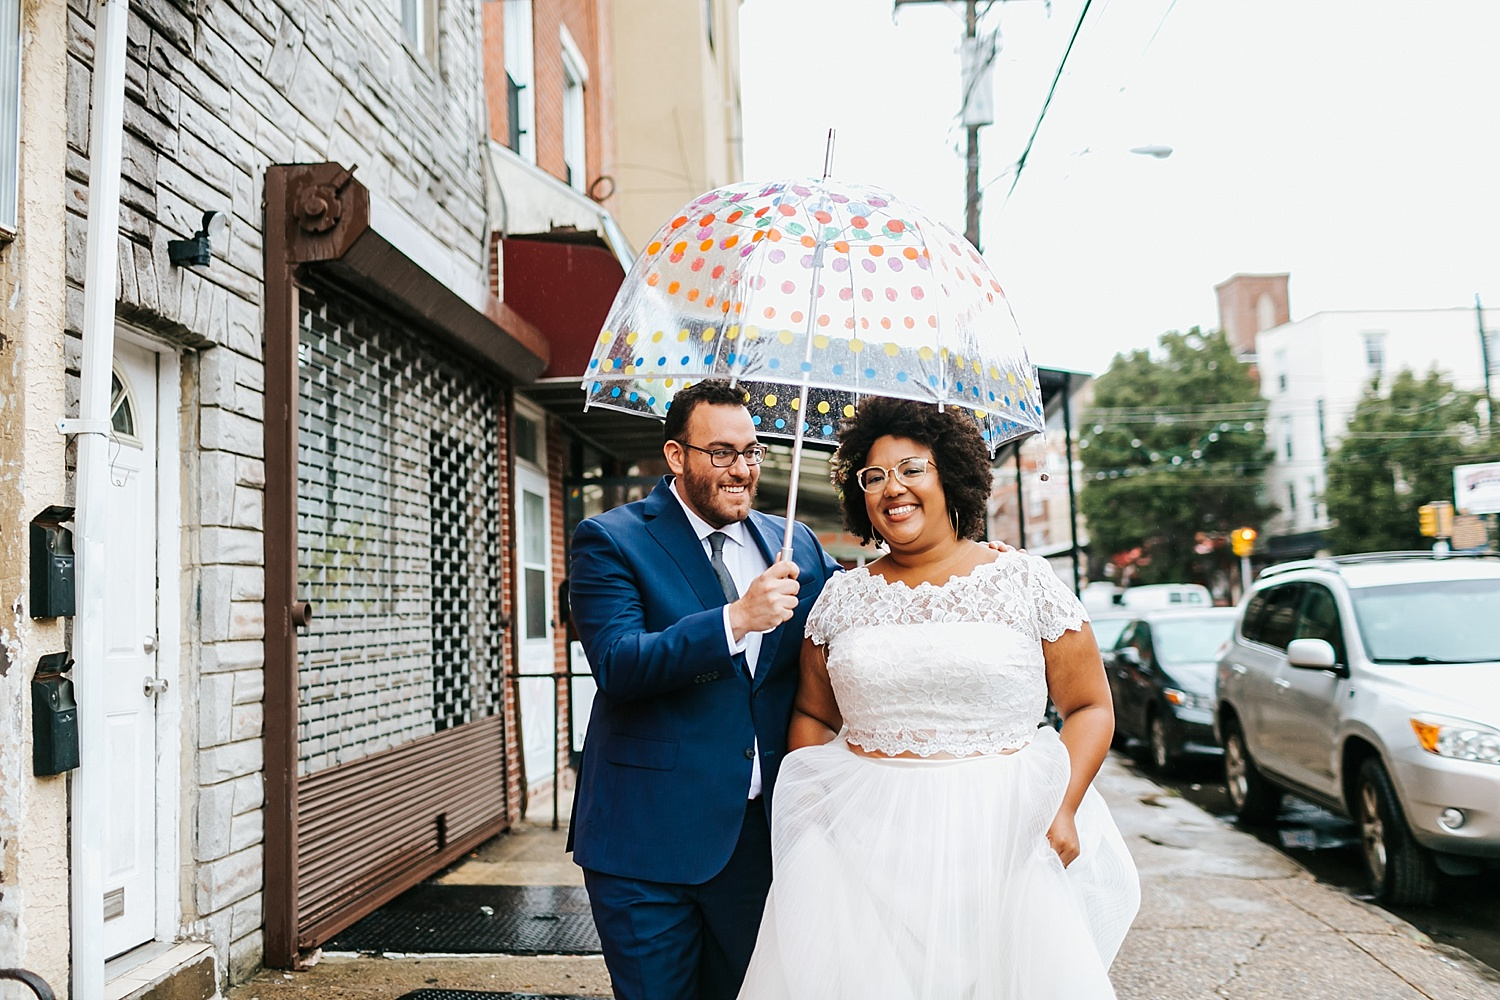 Bride and groom walking on a rainy day holding an umbrella in Philadelphia by Danfredo Photos + Films